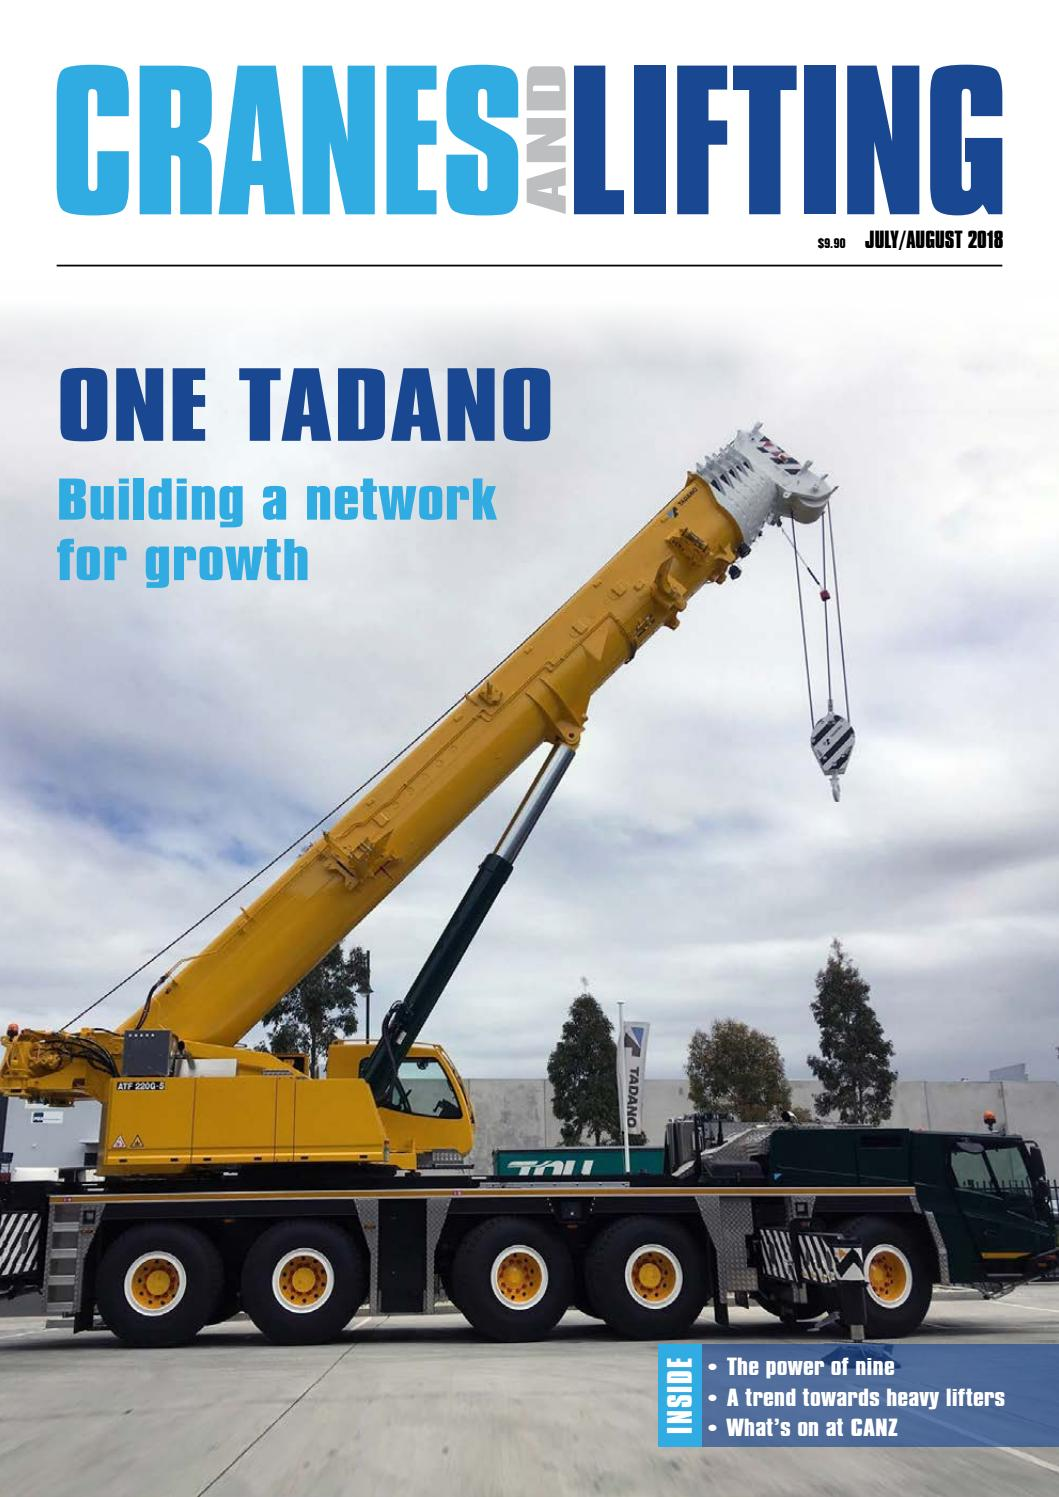 CRANES AND LIFTING: July/August 2018 by Mayfam Media - issuu on